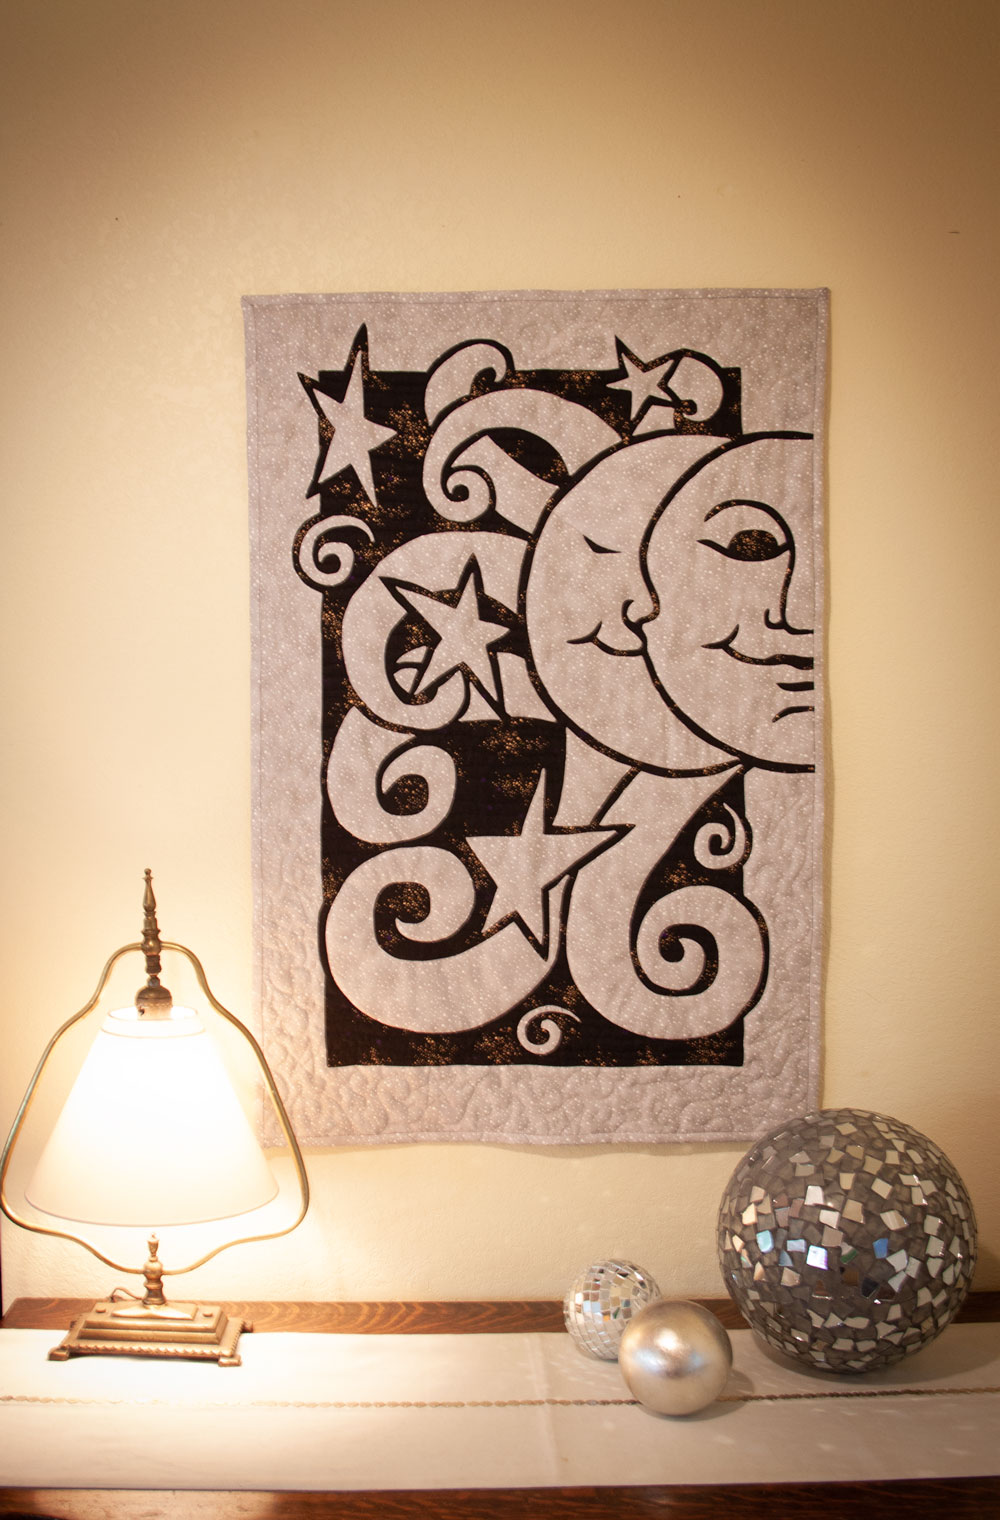 Moon Dance 2 Fabric Applique Quilt Pattern